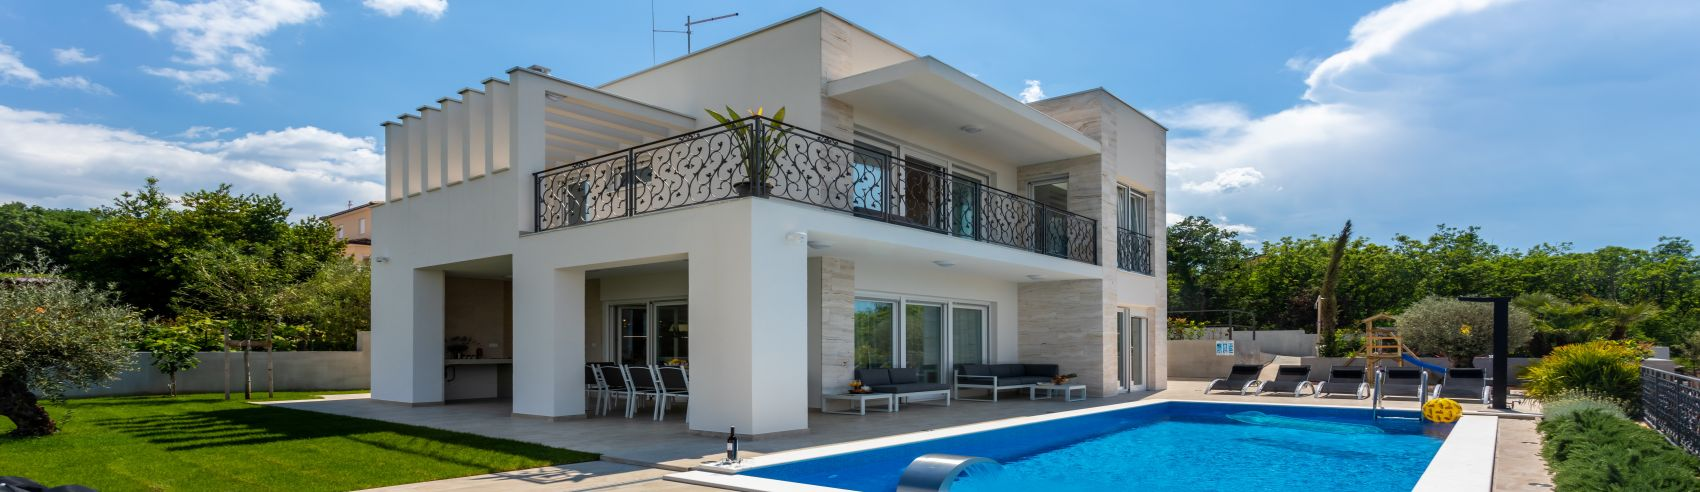 EXCLUSIVE VILLA WITH POOL AND PANORAMIC SEA VIEW, 200 M FROM THE BEACH!